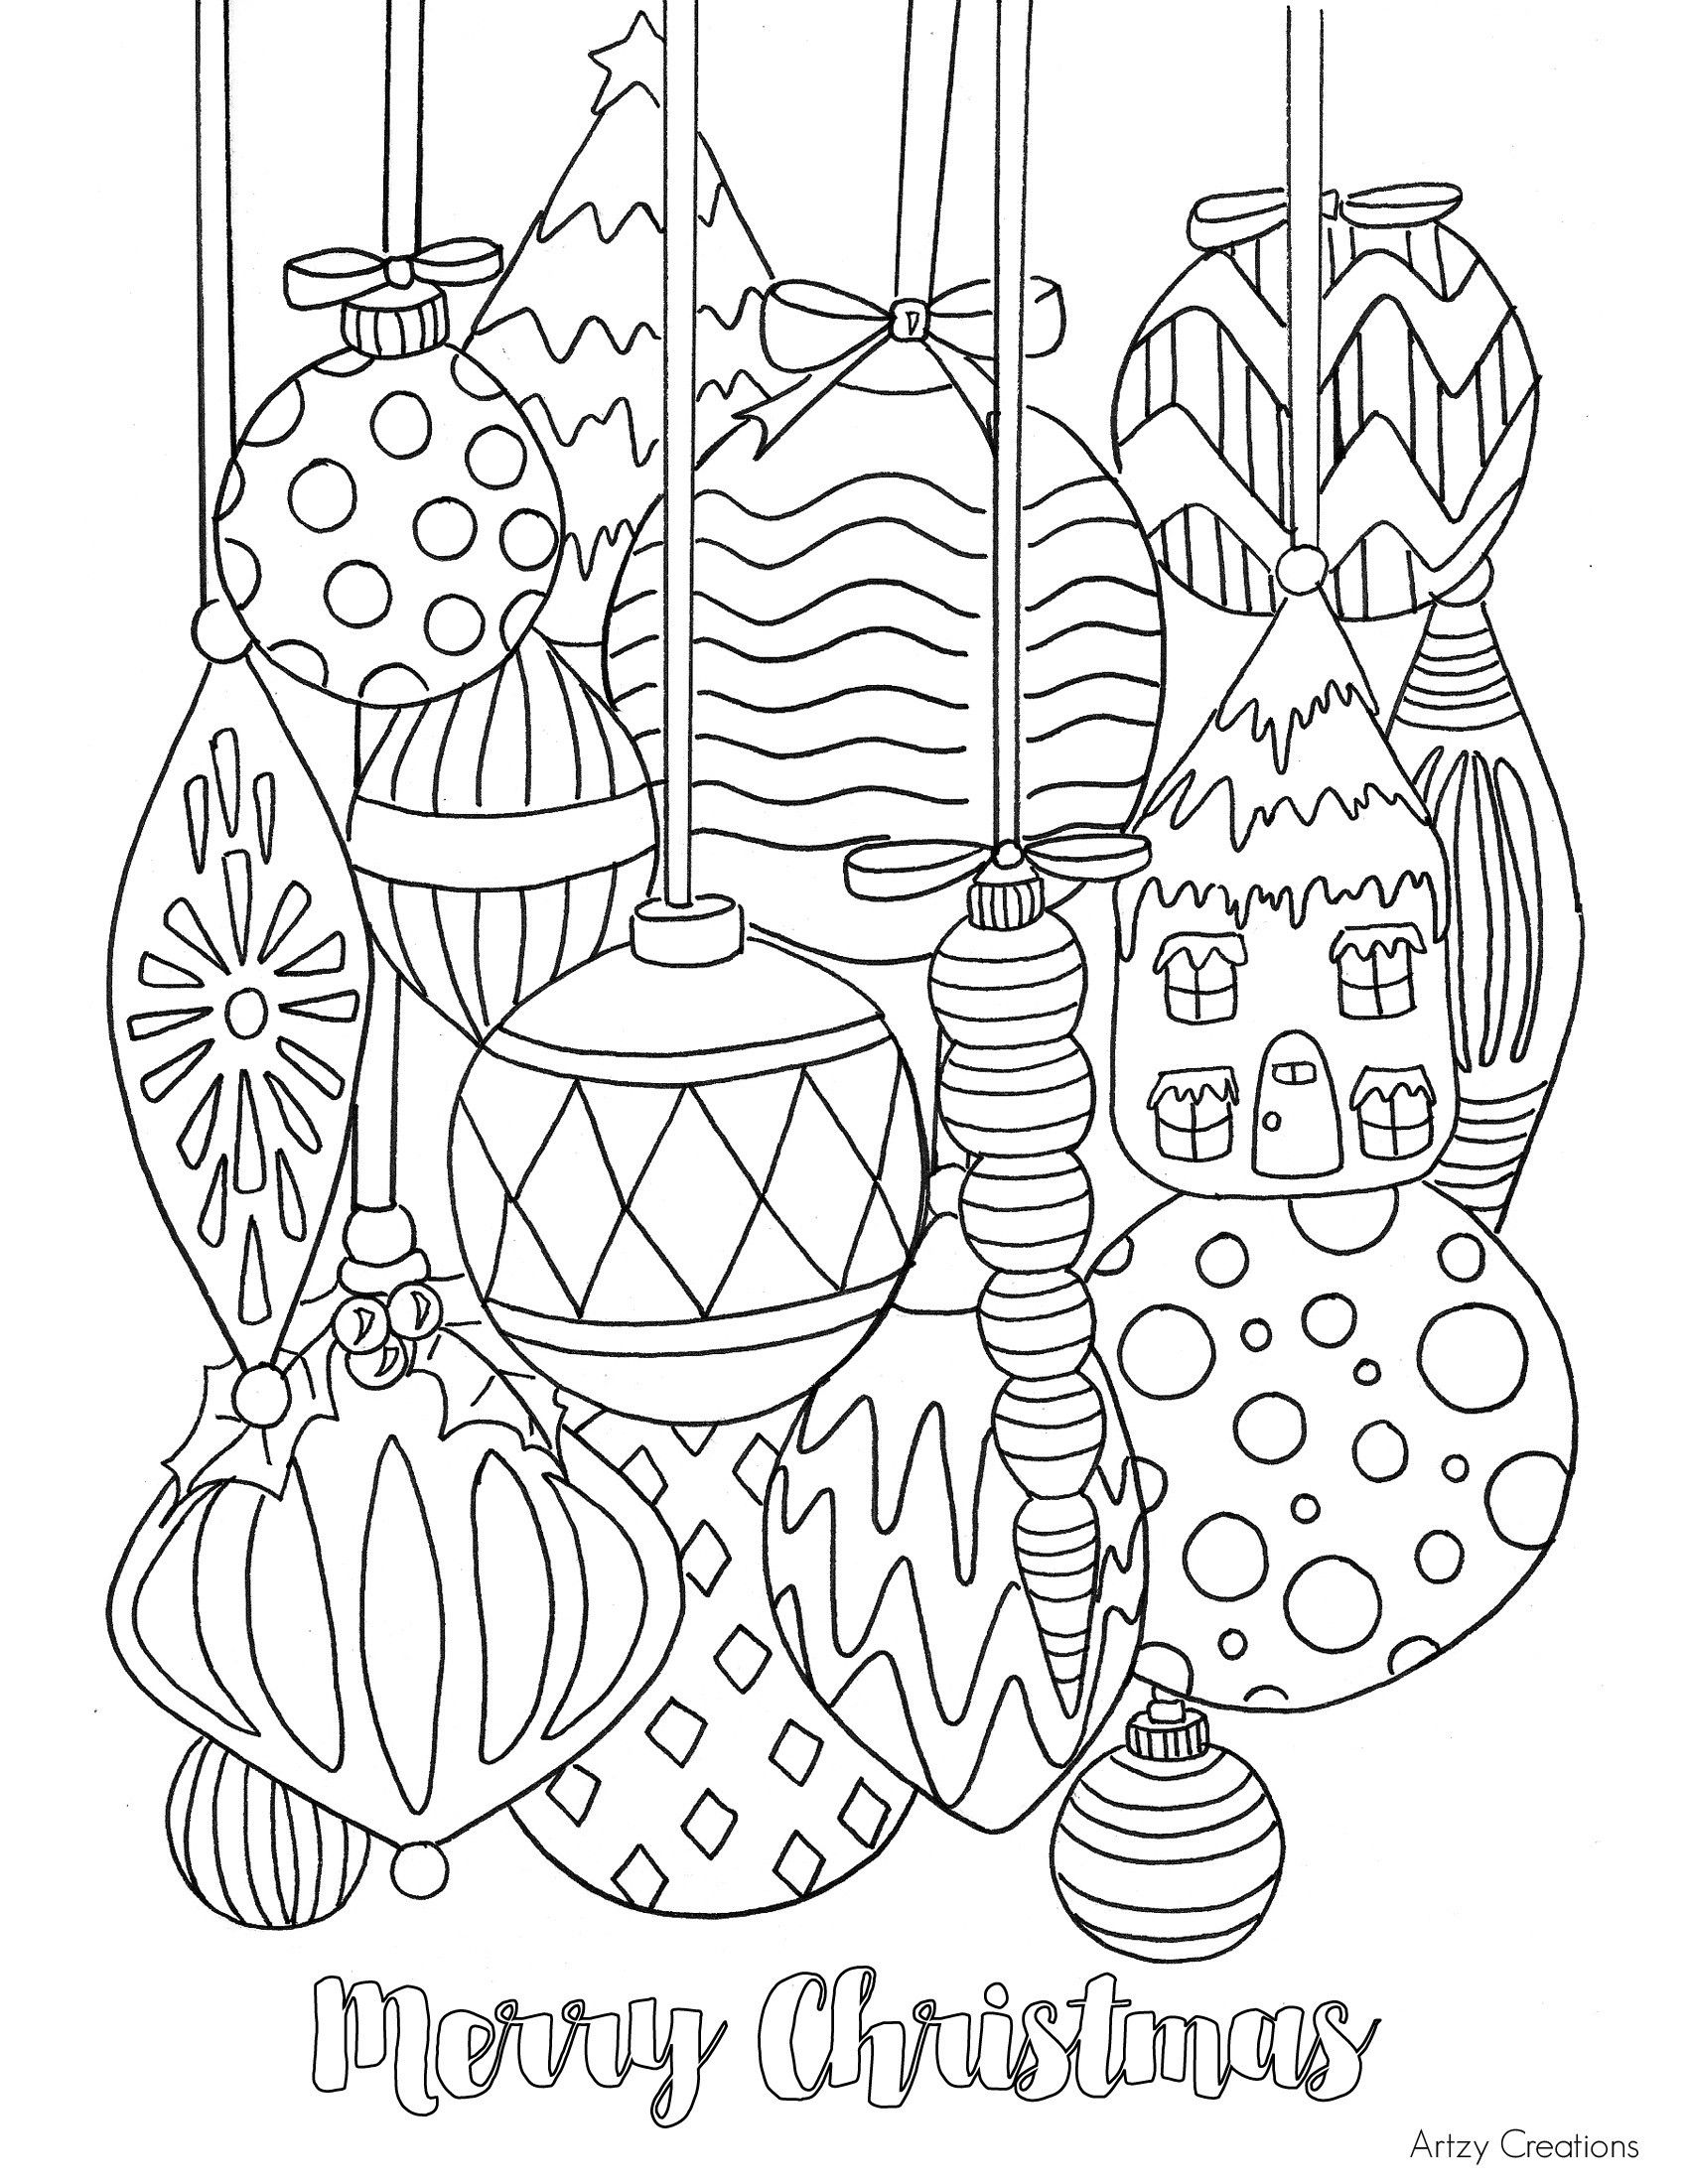 3 Days Ago Printable Christmas Coloring Pages Free Christmas Coloring Pages Christmas Coloring Pages